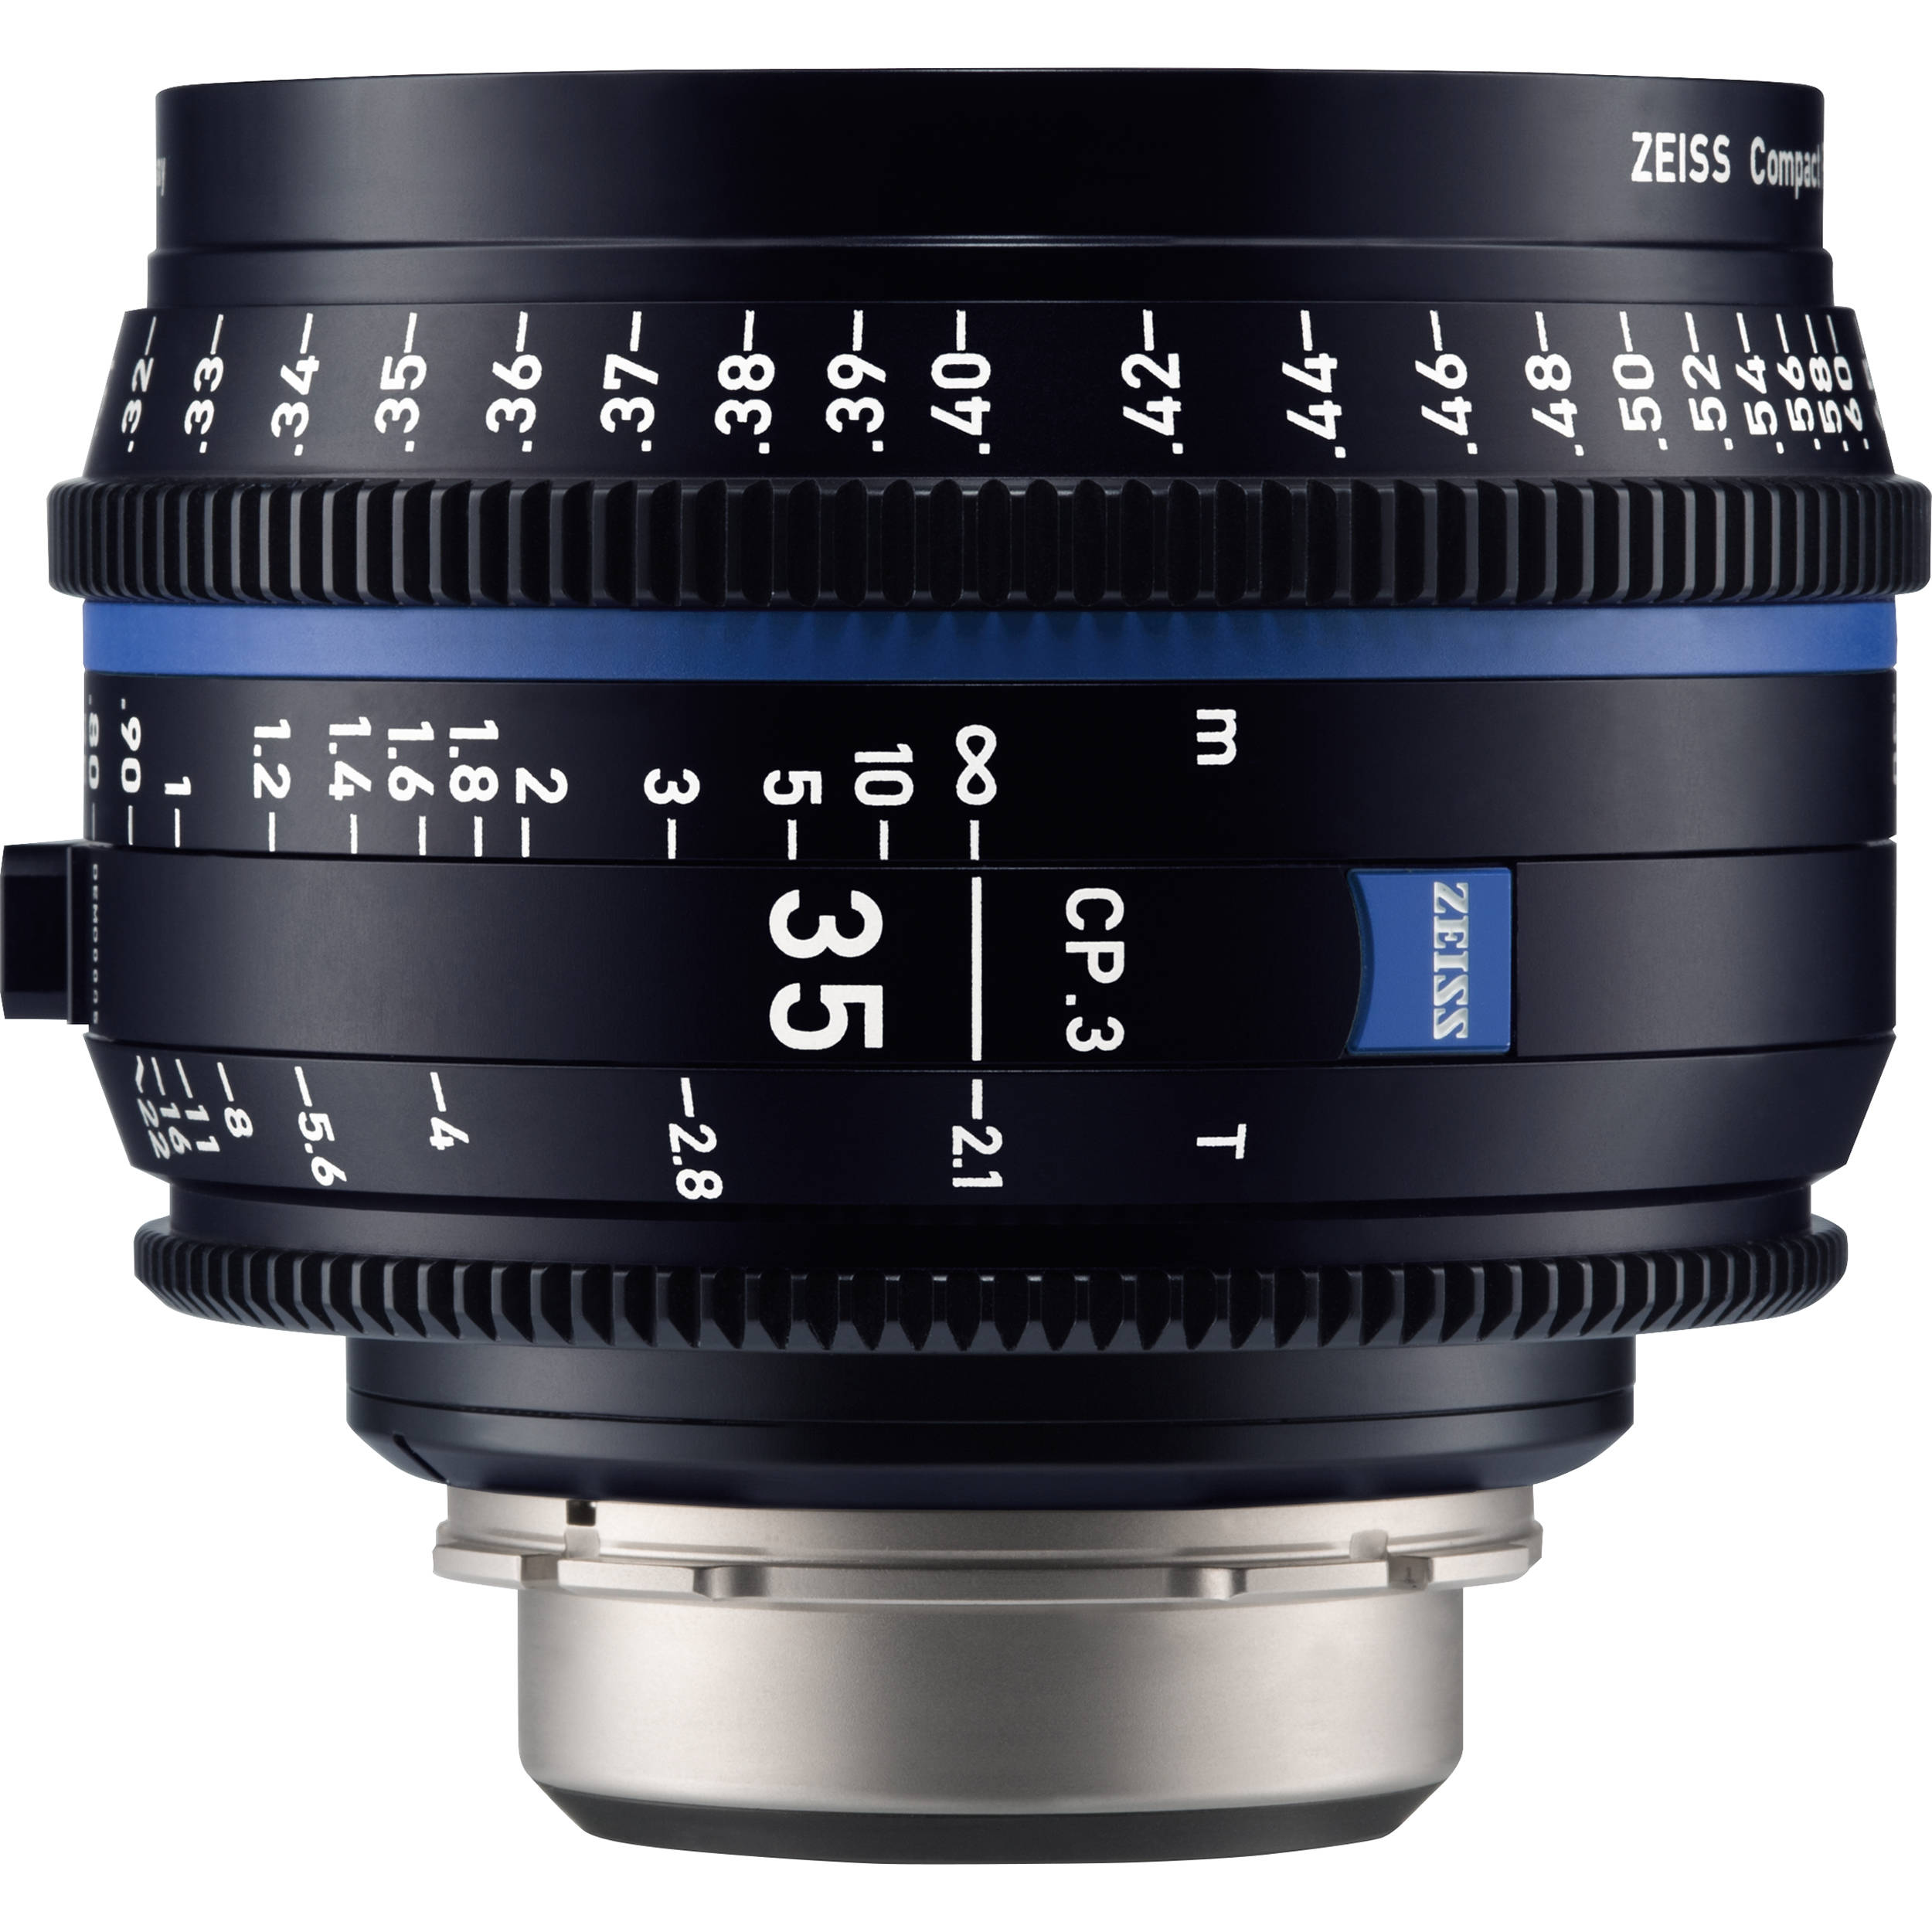 Zeiss Cp 3 35mm T2 1 Compact Prime Lens 2177 938 B Amp H Photo